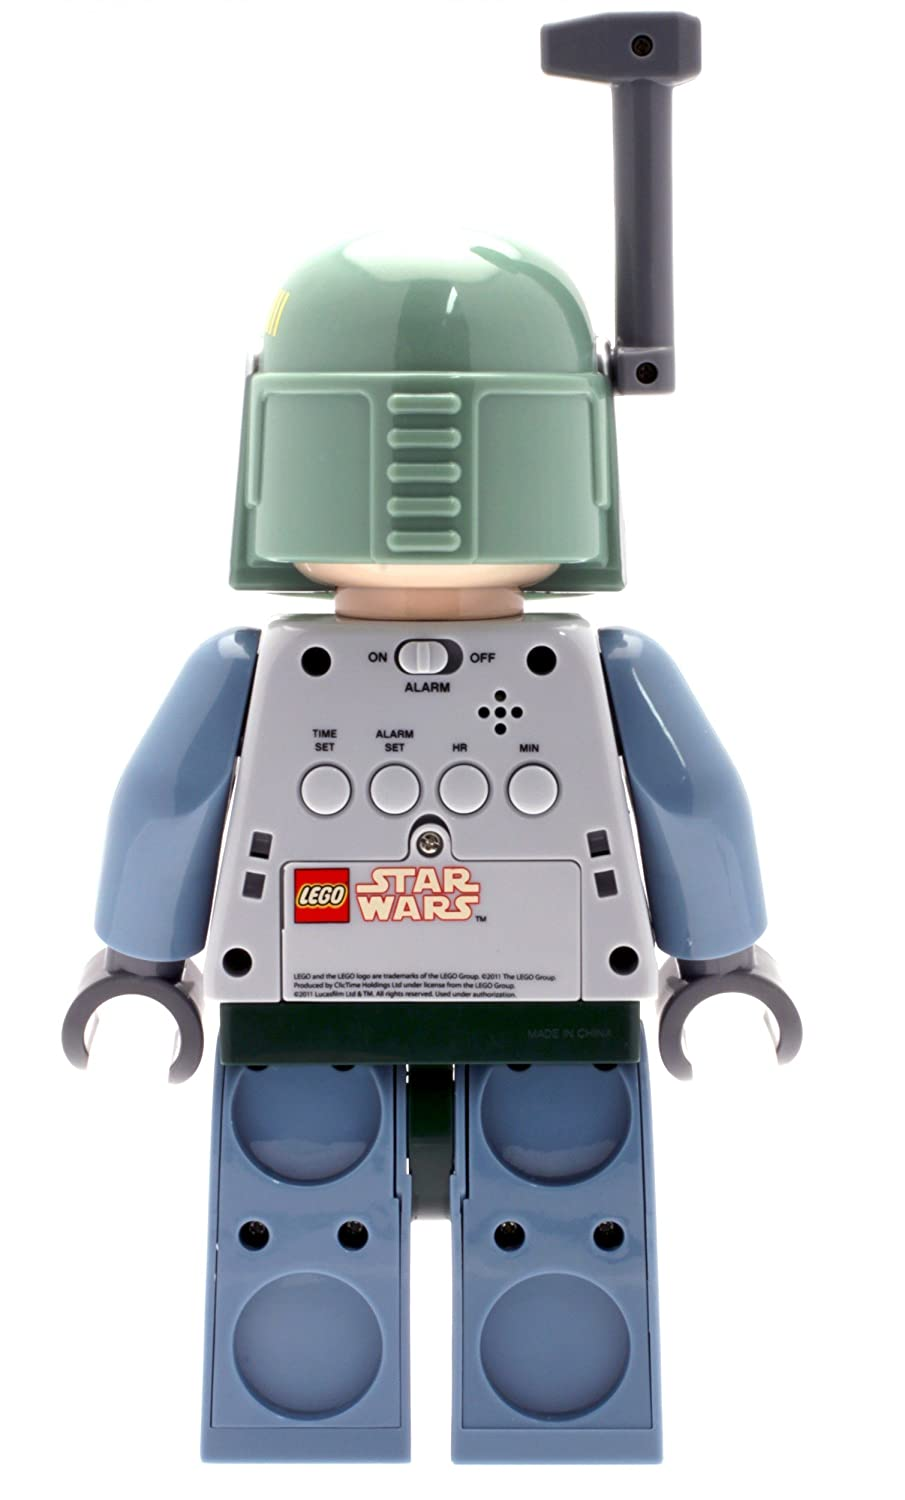 Lego Star Wars 9003530 Boba Fett Kids Minifigure Light Up Alarm